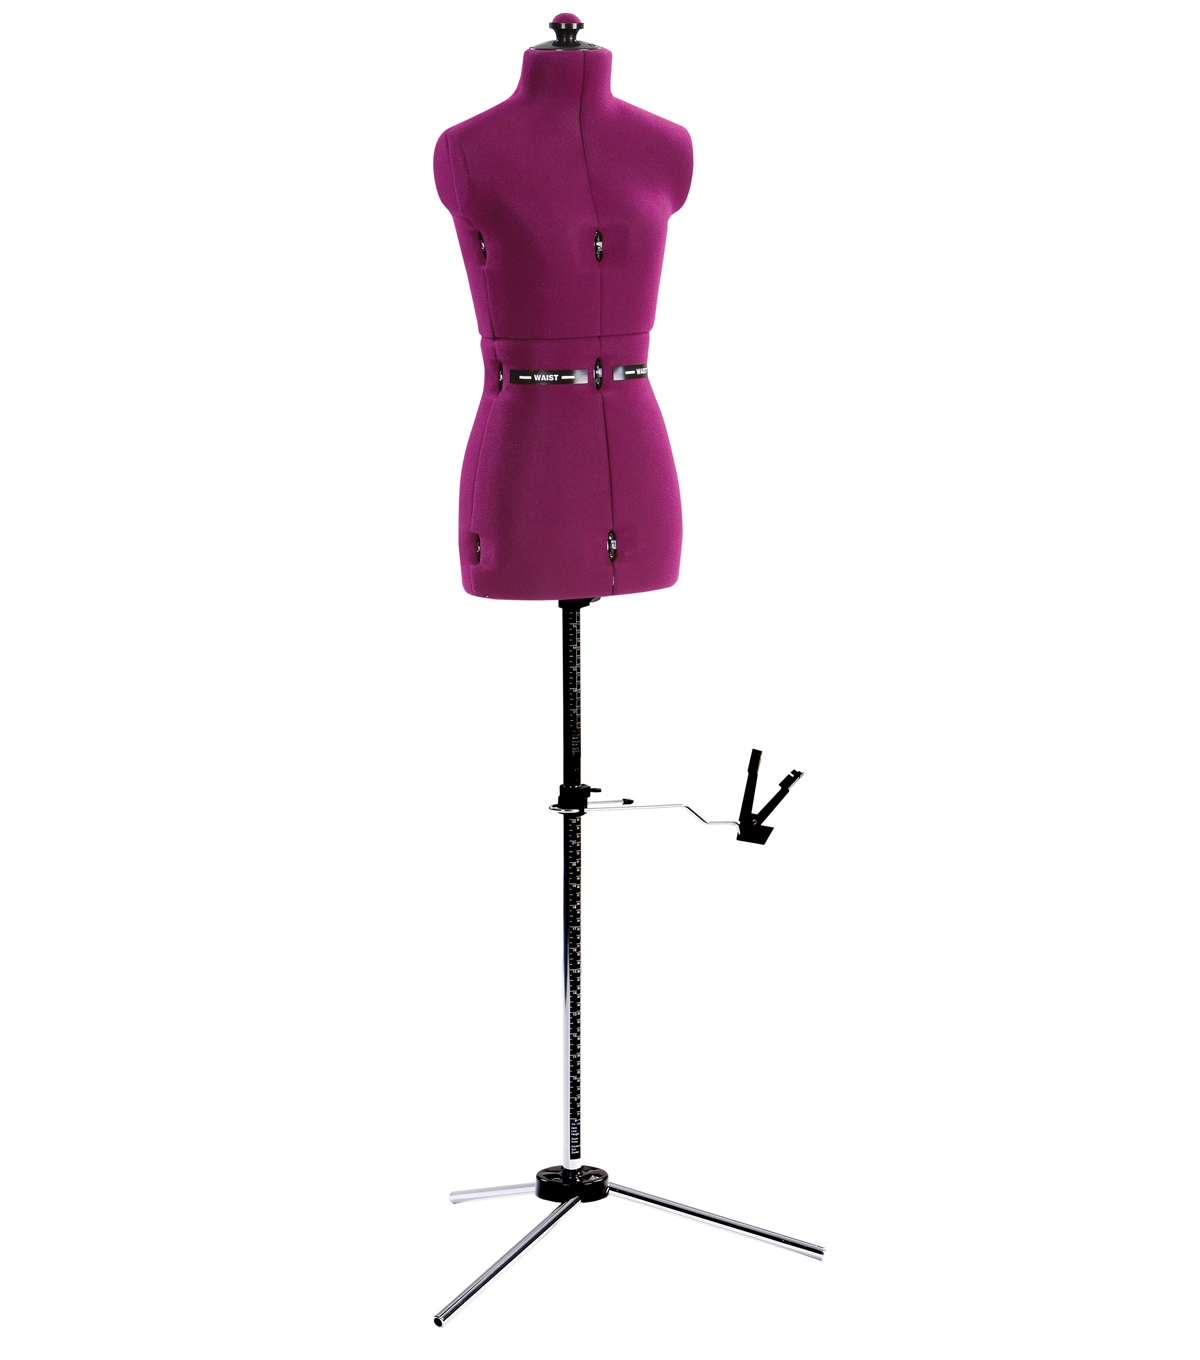 Dress Forms - Adjustable Dress Forms for Sewing | JOANN